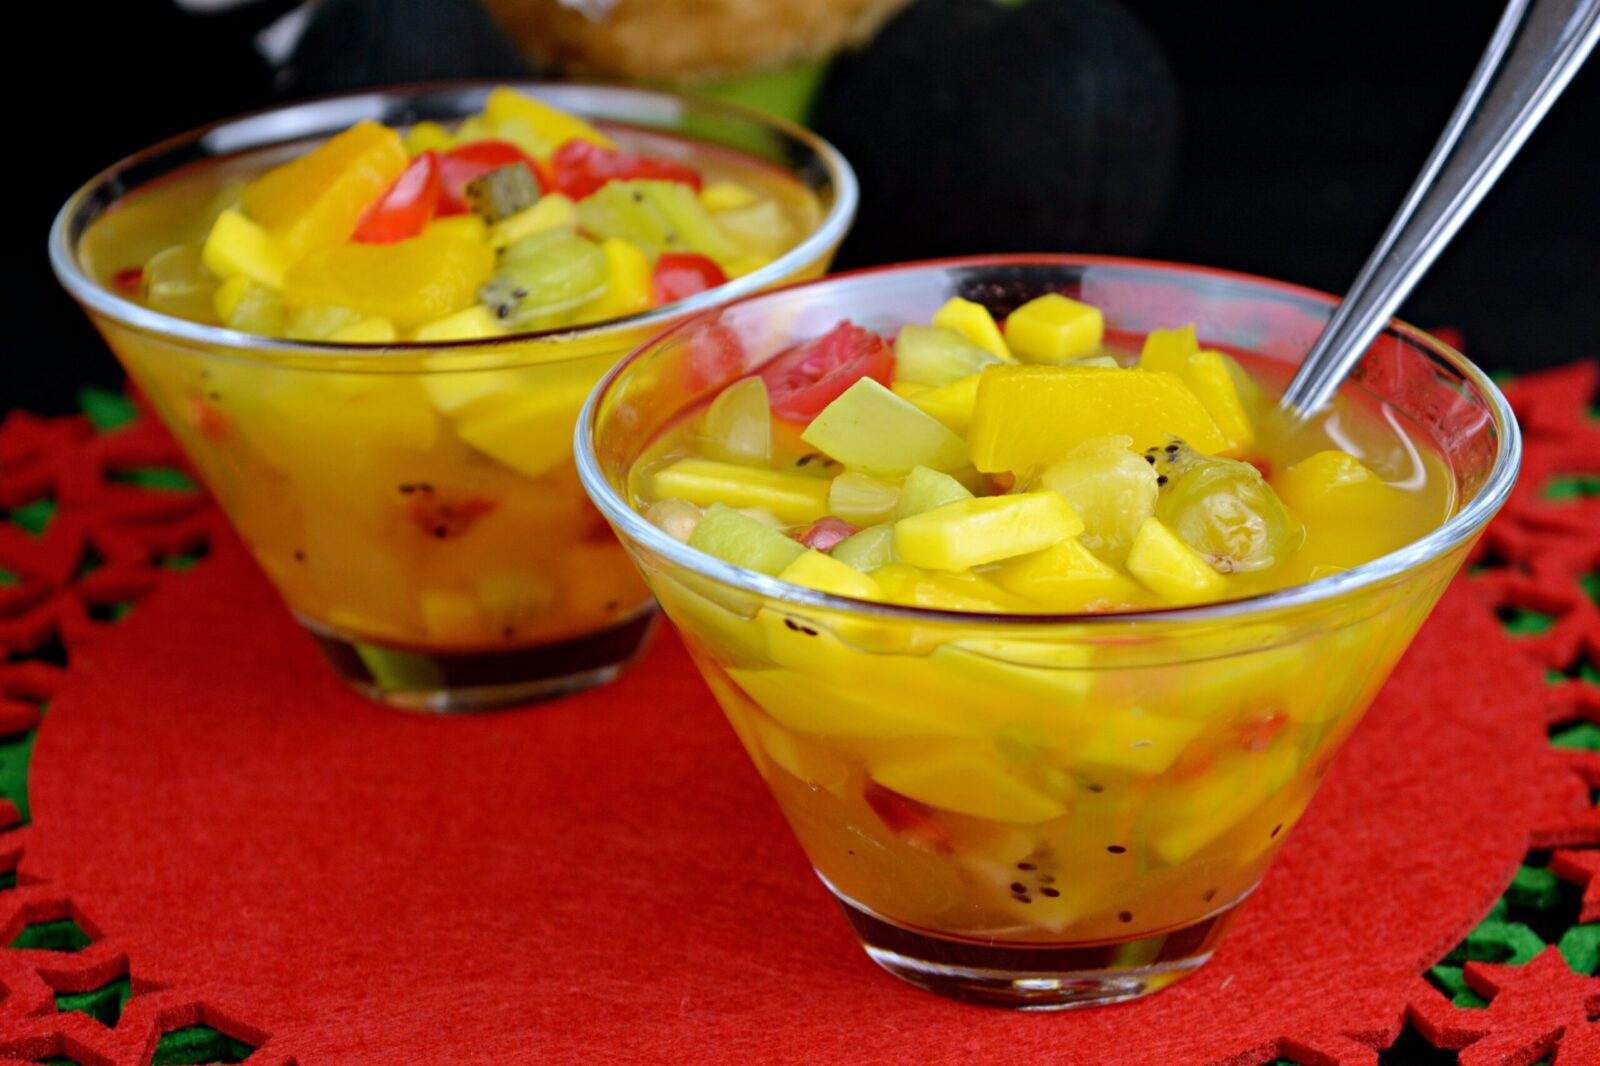 How to make a fruit cup or fruit salad